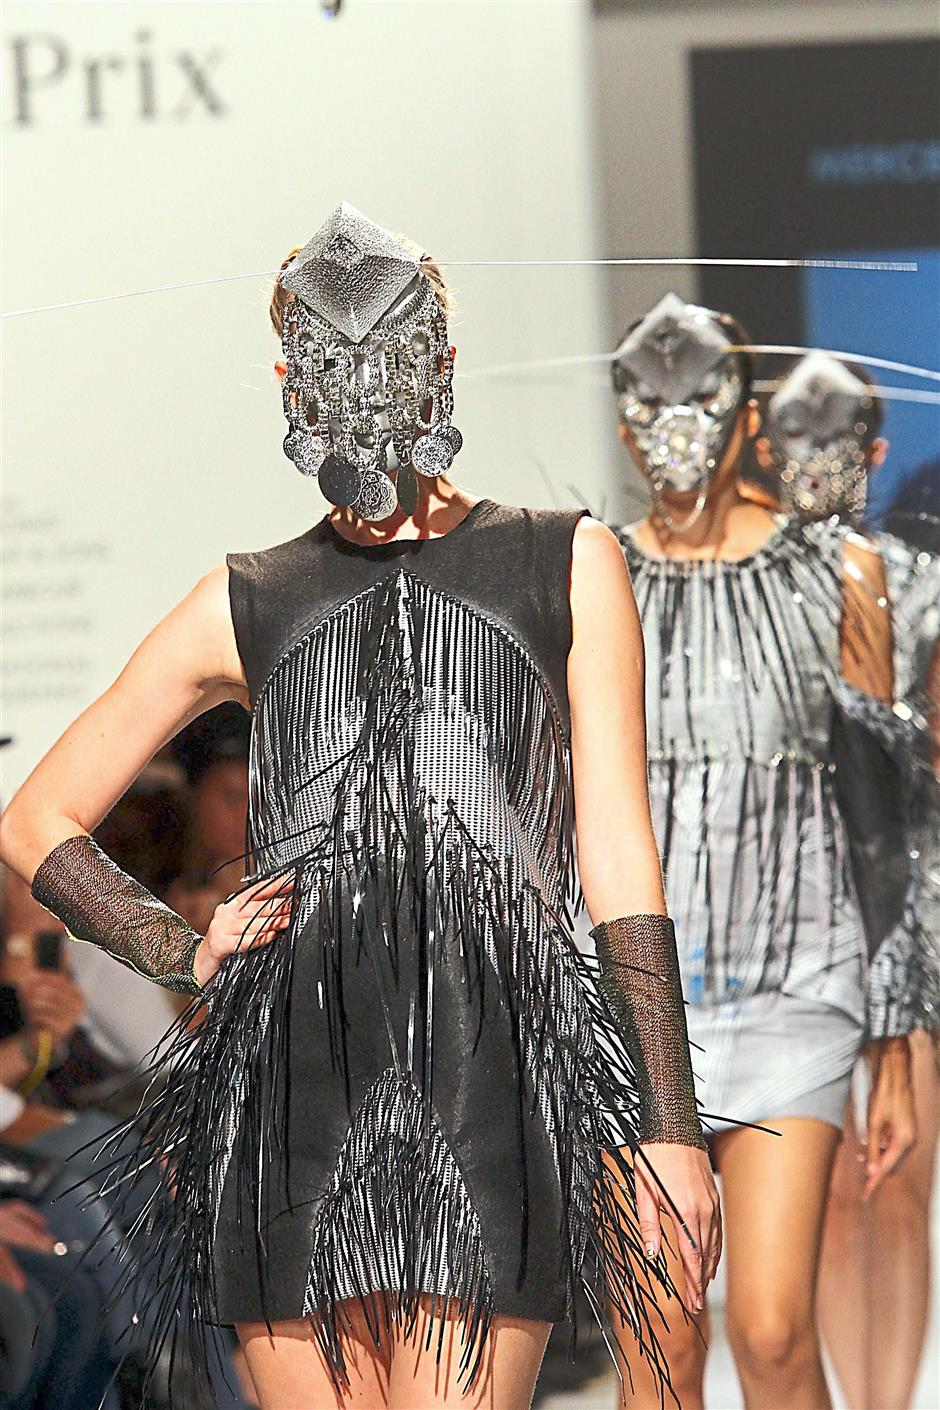 Catwalking knights: Designs by Arun Chee from City University of Science and Technology inspired by 'Metal Armour'.